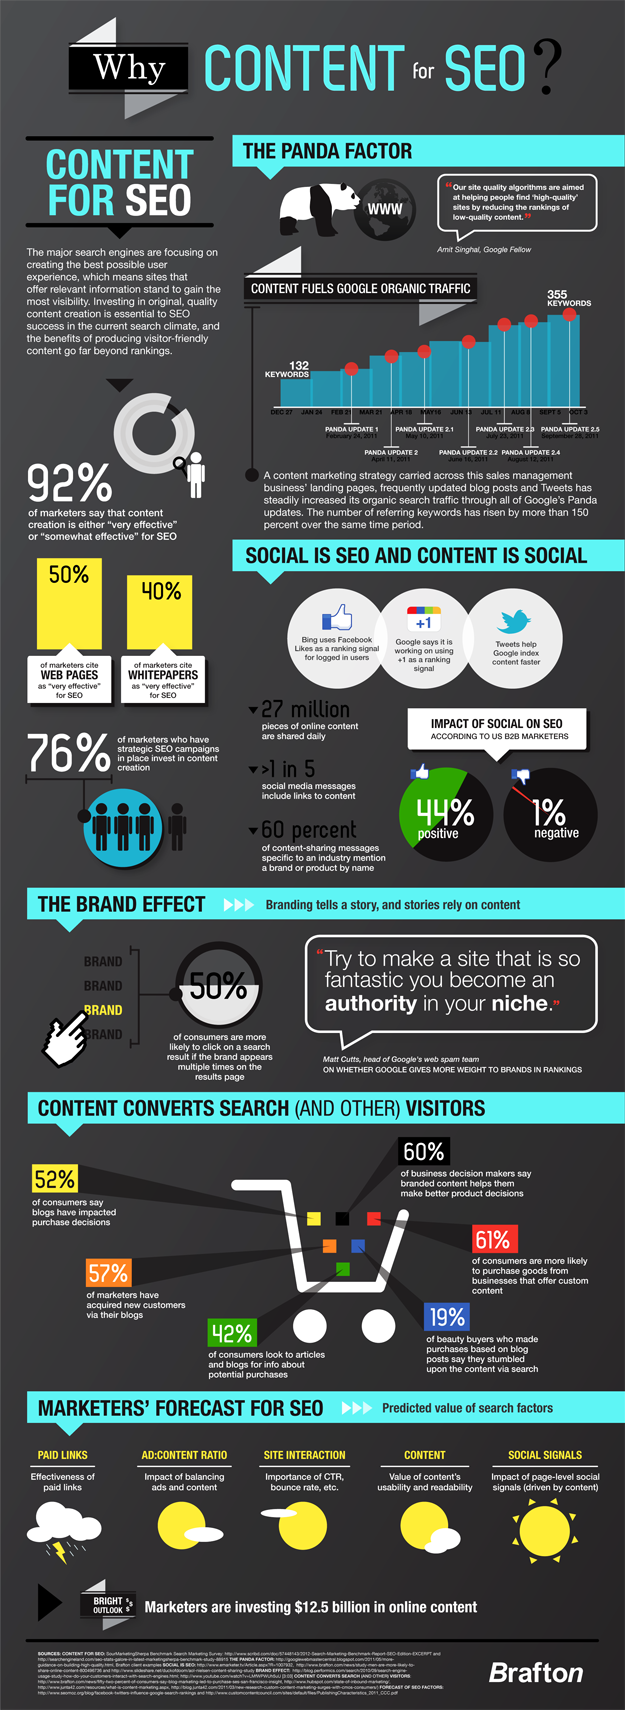 Blog_Content_Drives_SEO_Rankings_Converts_Search_Drives_Social_Media_Marketing_AIS_Media_Atlanta_MED